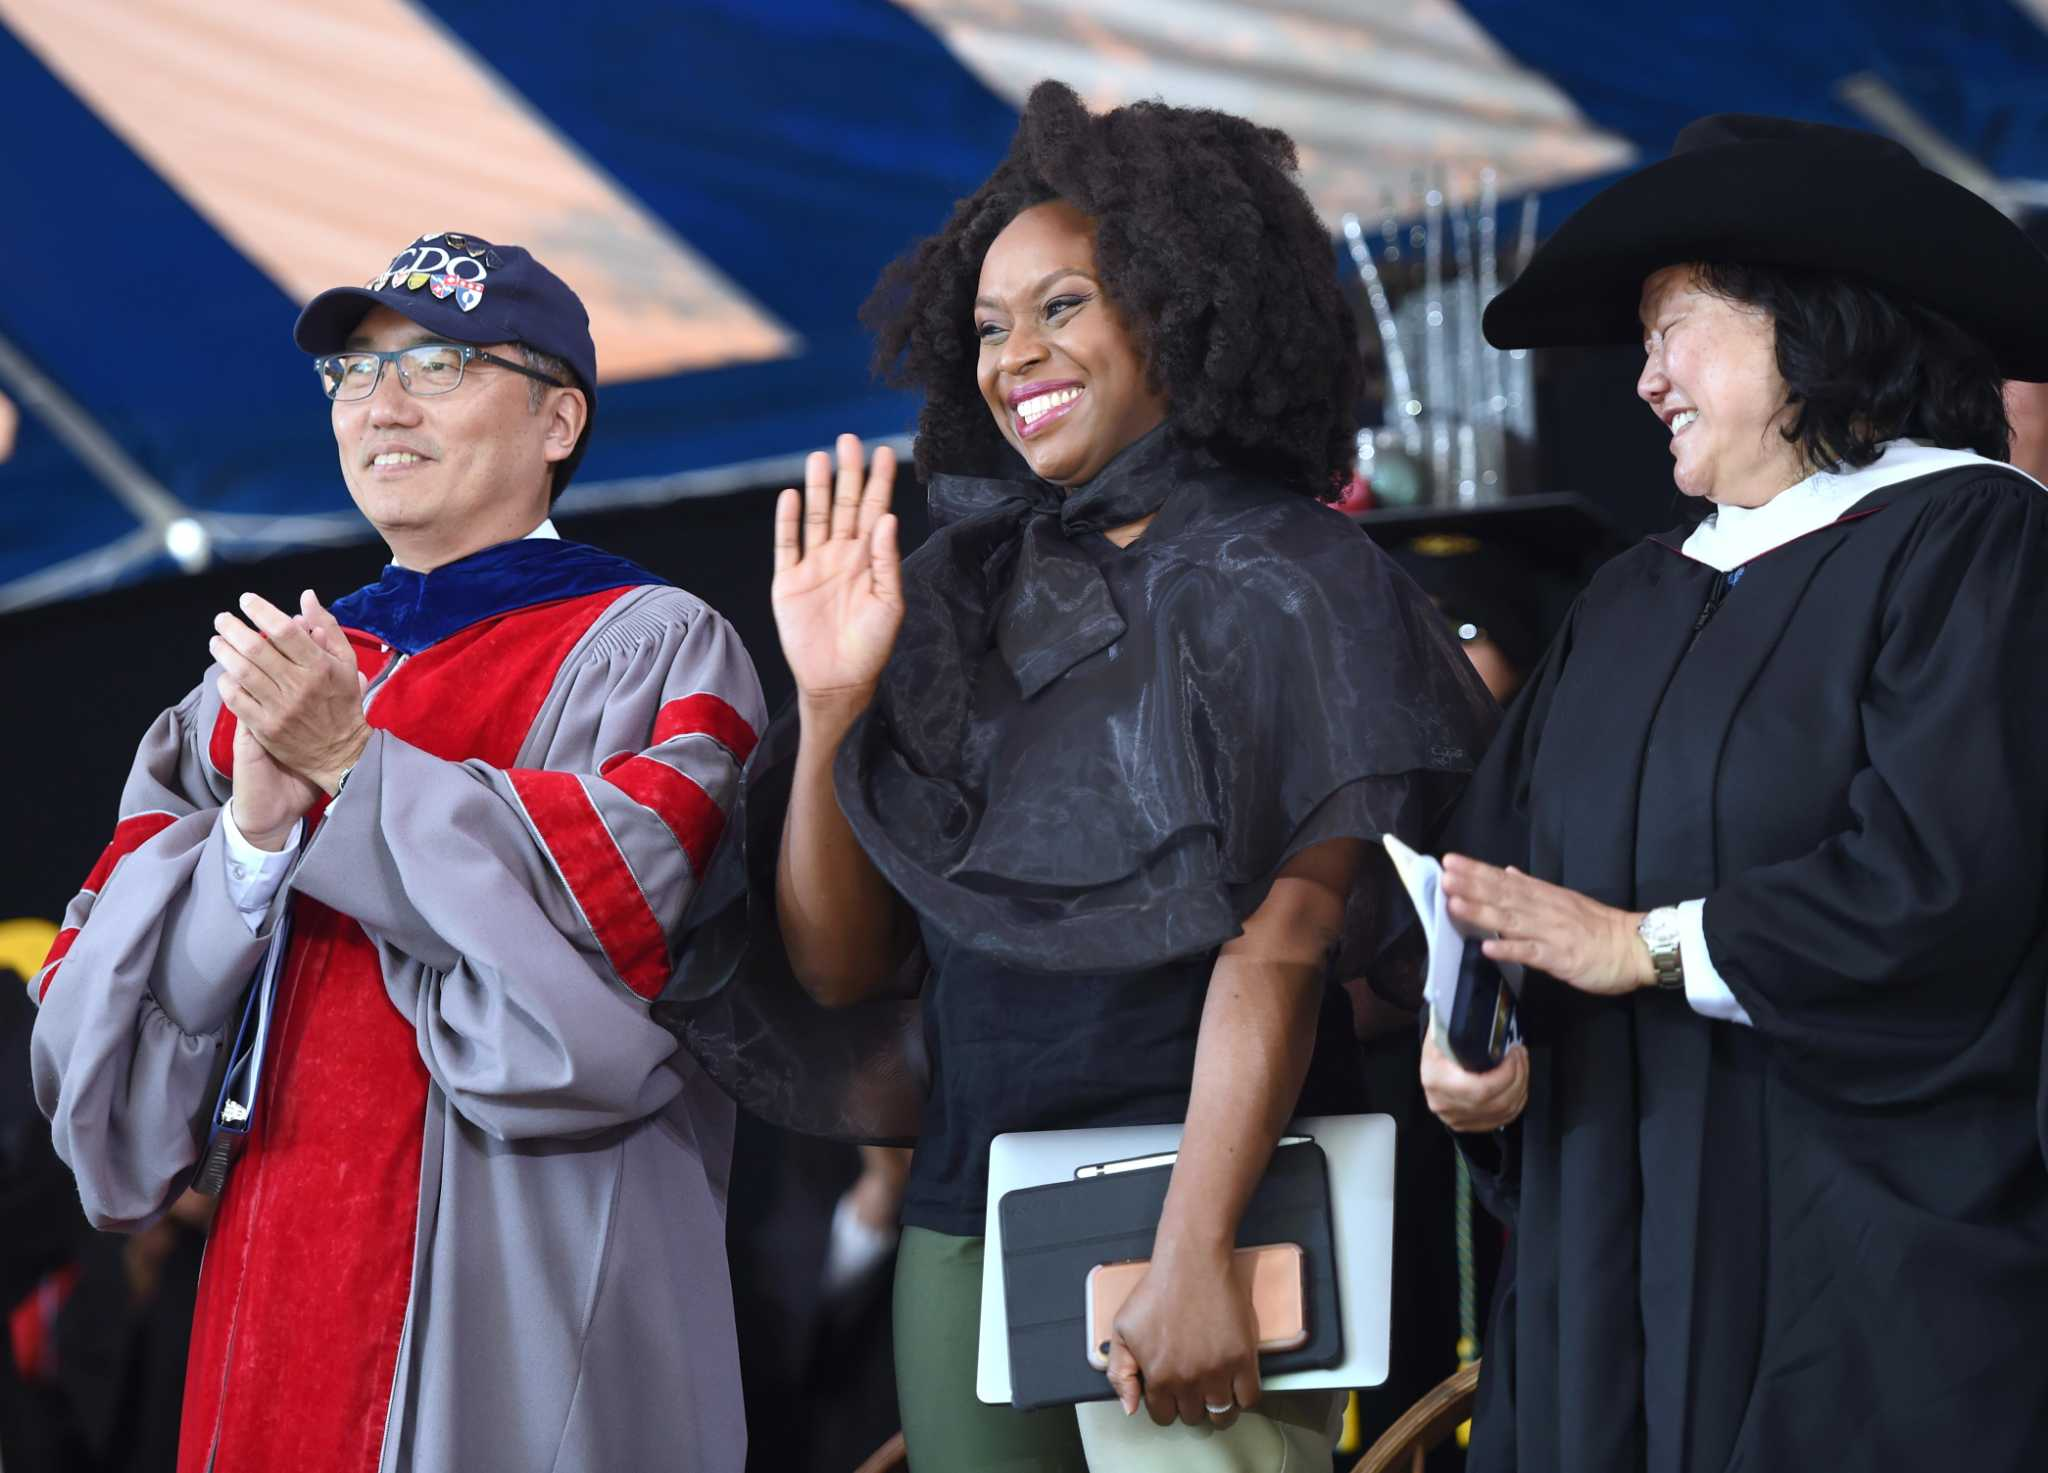 Yale class of '19 told to engage the world with courage and love